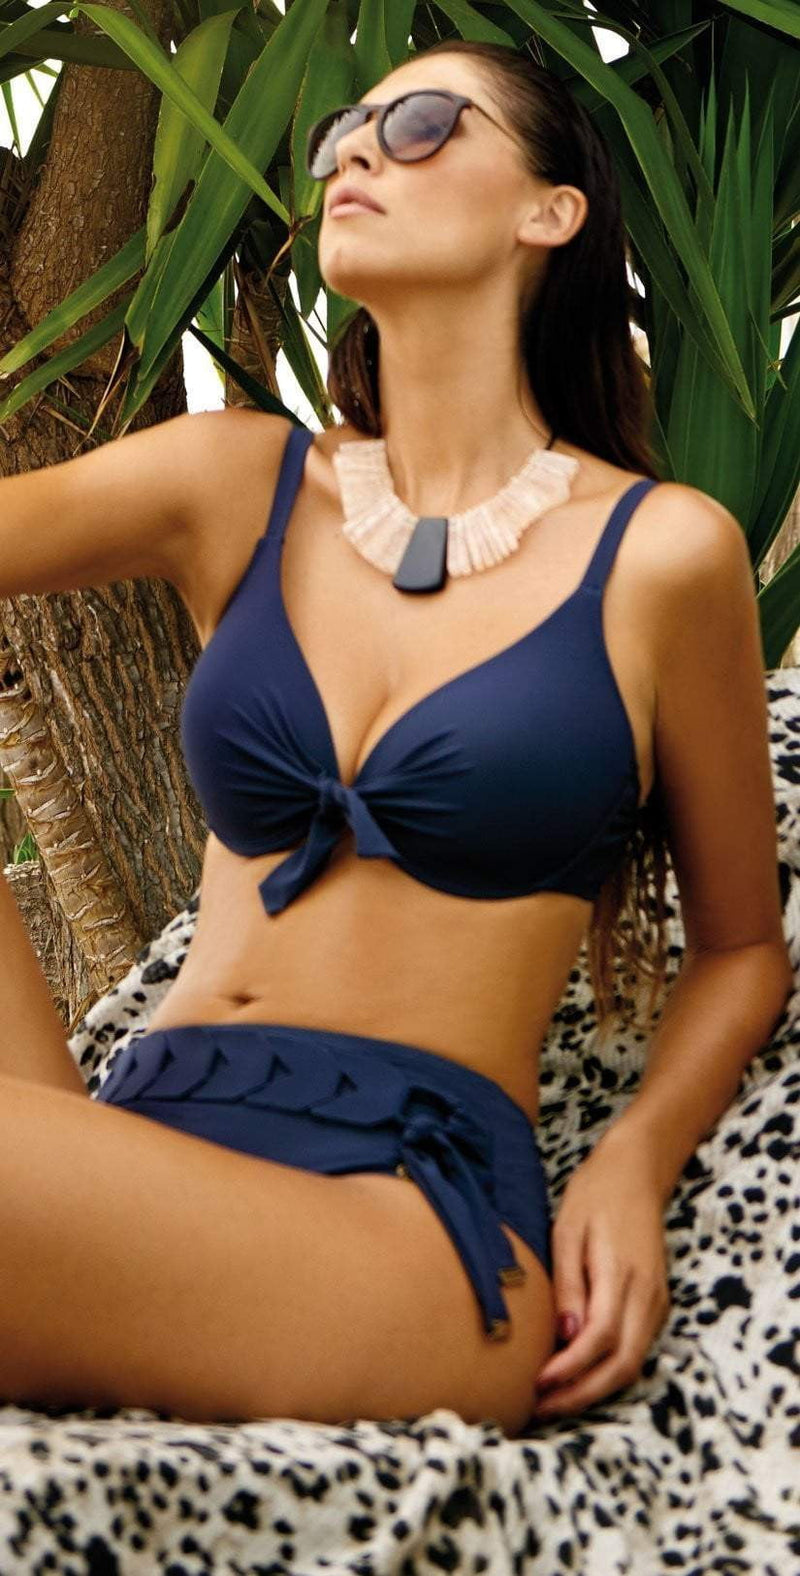 Nuria Ferrer Bruna Belted Bikini Bottom in Blue 66-2: